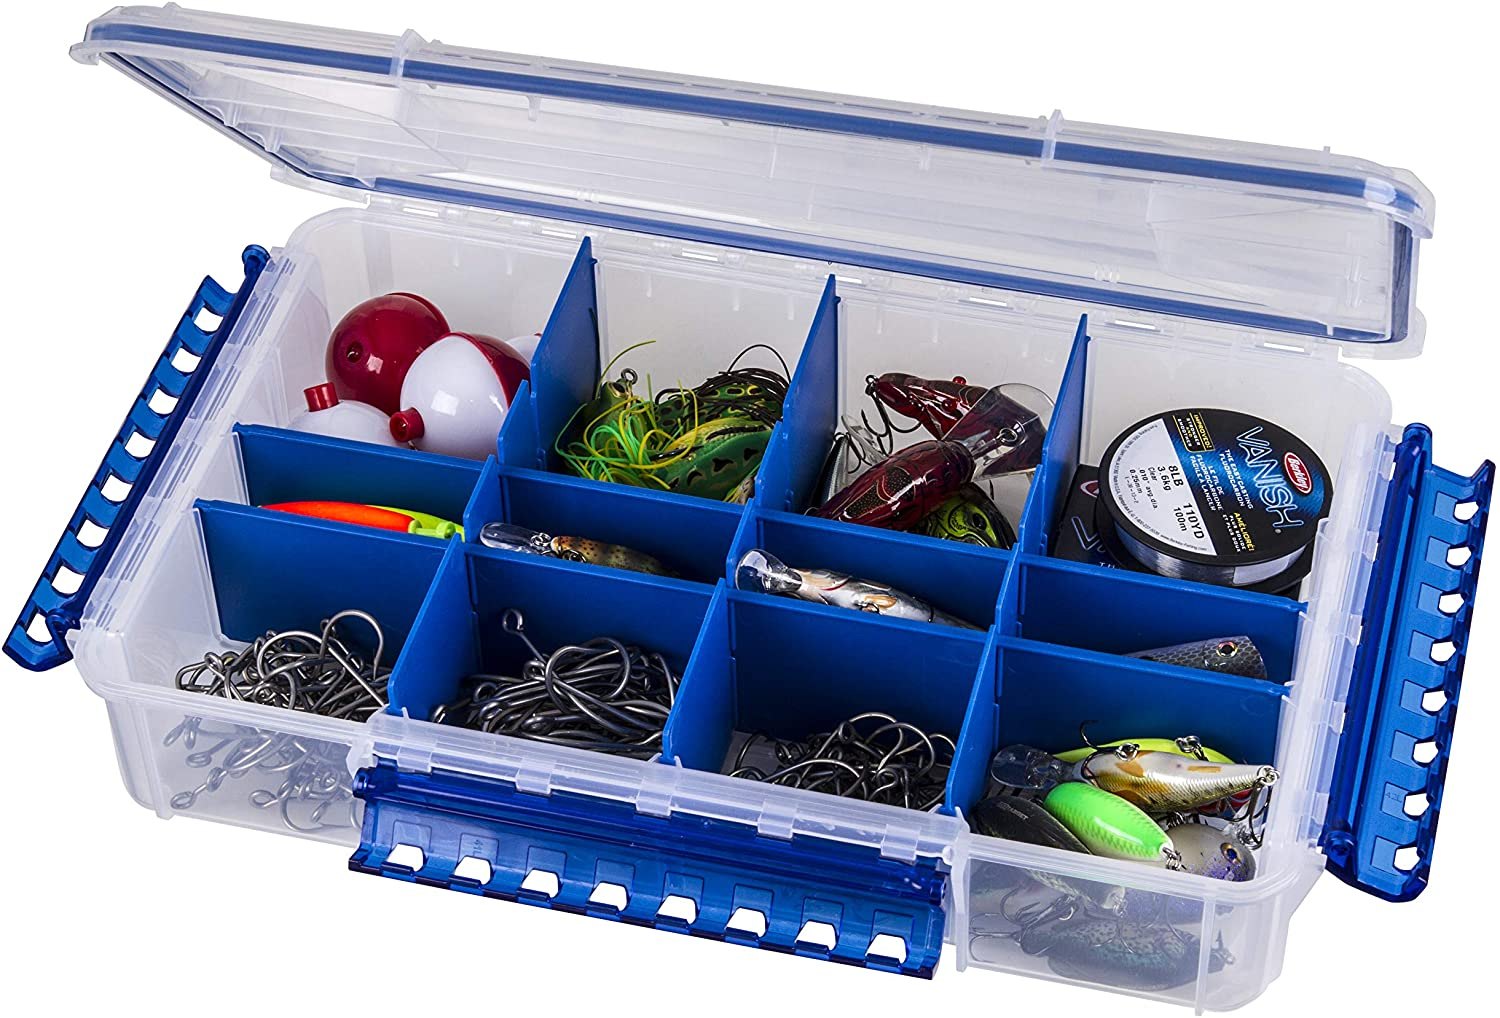 Flambeau Outdoors WP5012 Ultimate Waterproof Tuff Tainer - Double Deep - 16 Compartments (Includes (5) Zerust Dividers): Sports & Outdoors